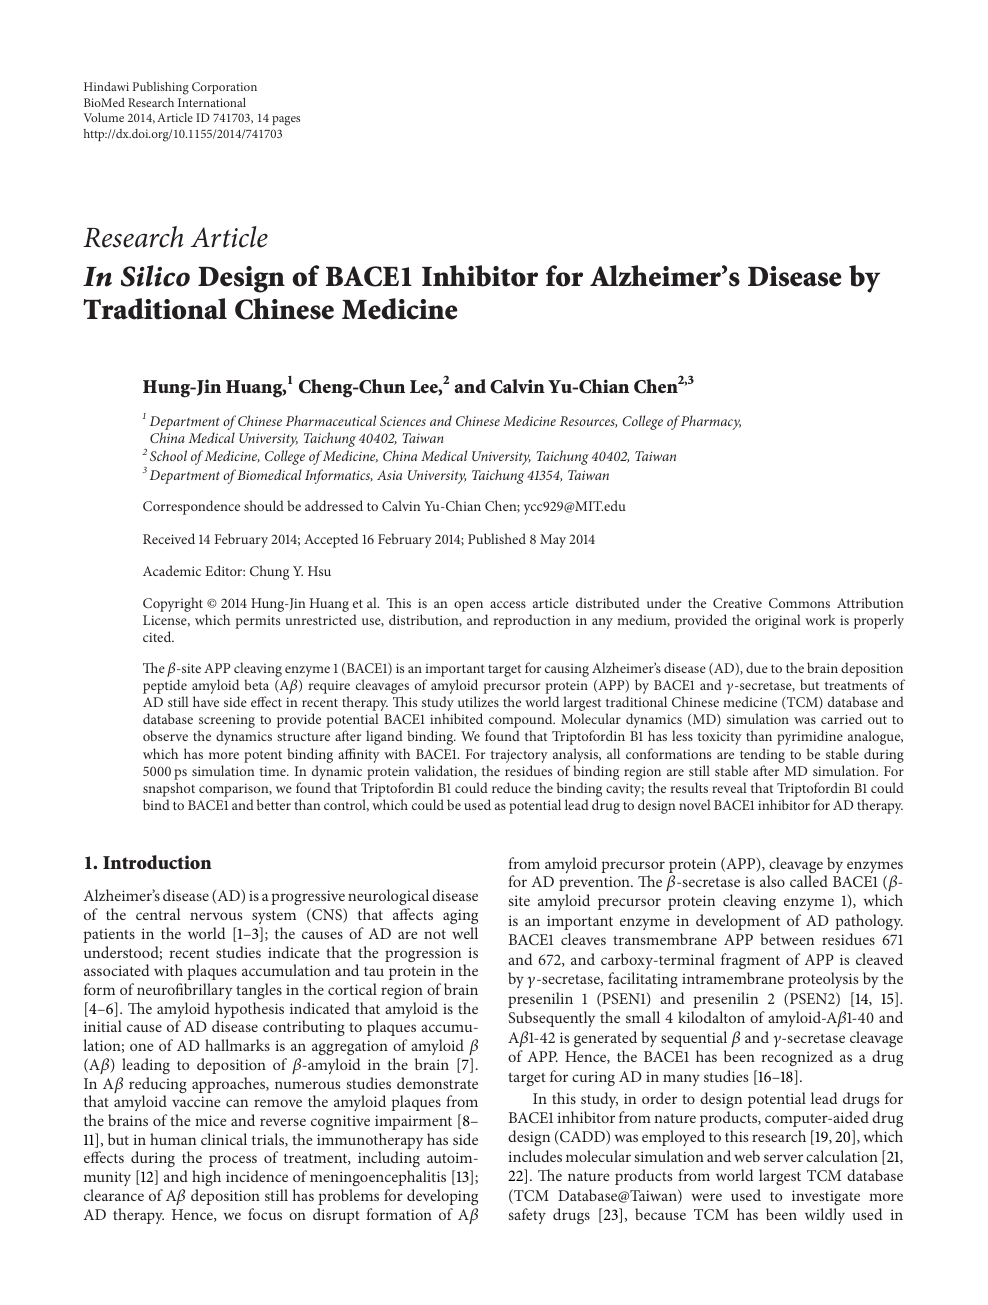 004 Alzheimers Disease Research Paper Topic Archaicawful Alzheimer's Ideas Topics Full